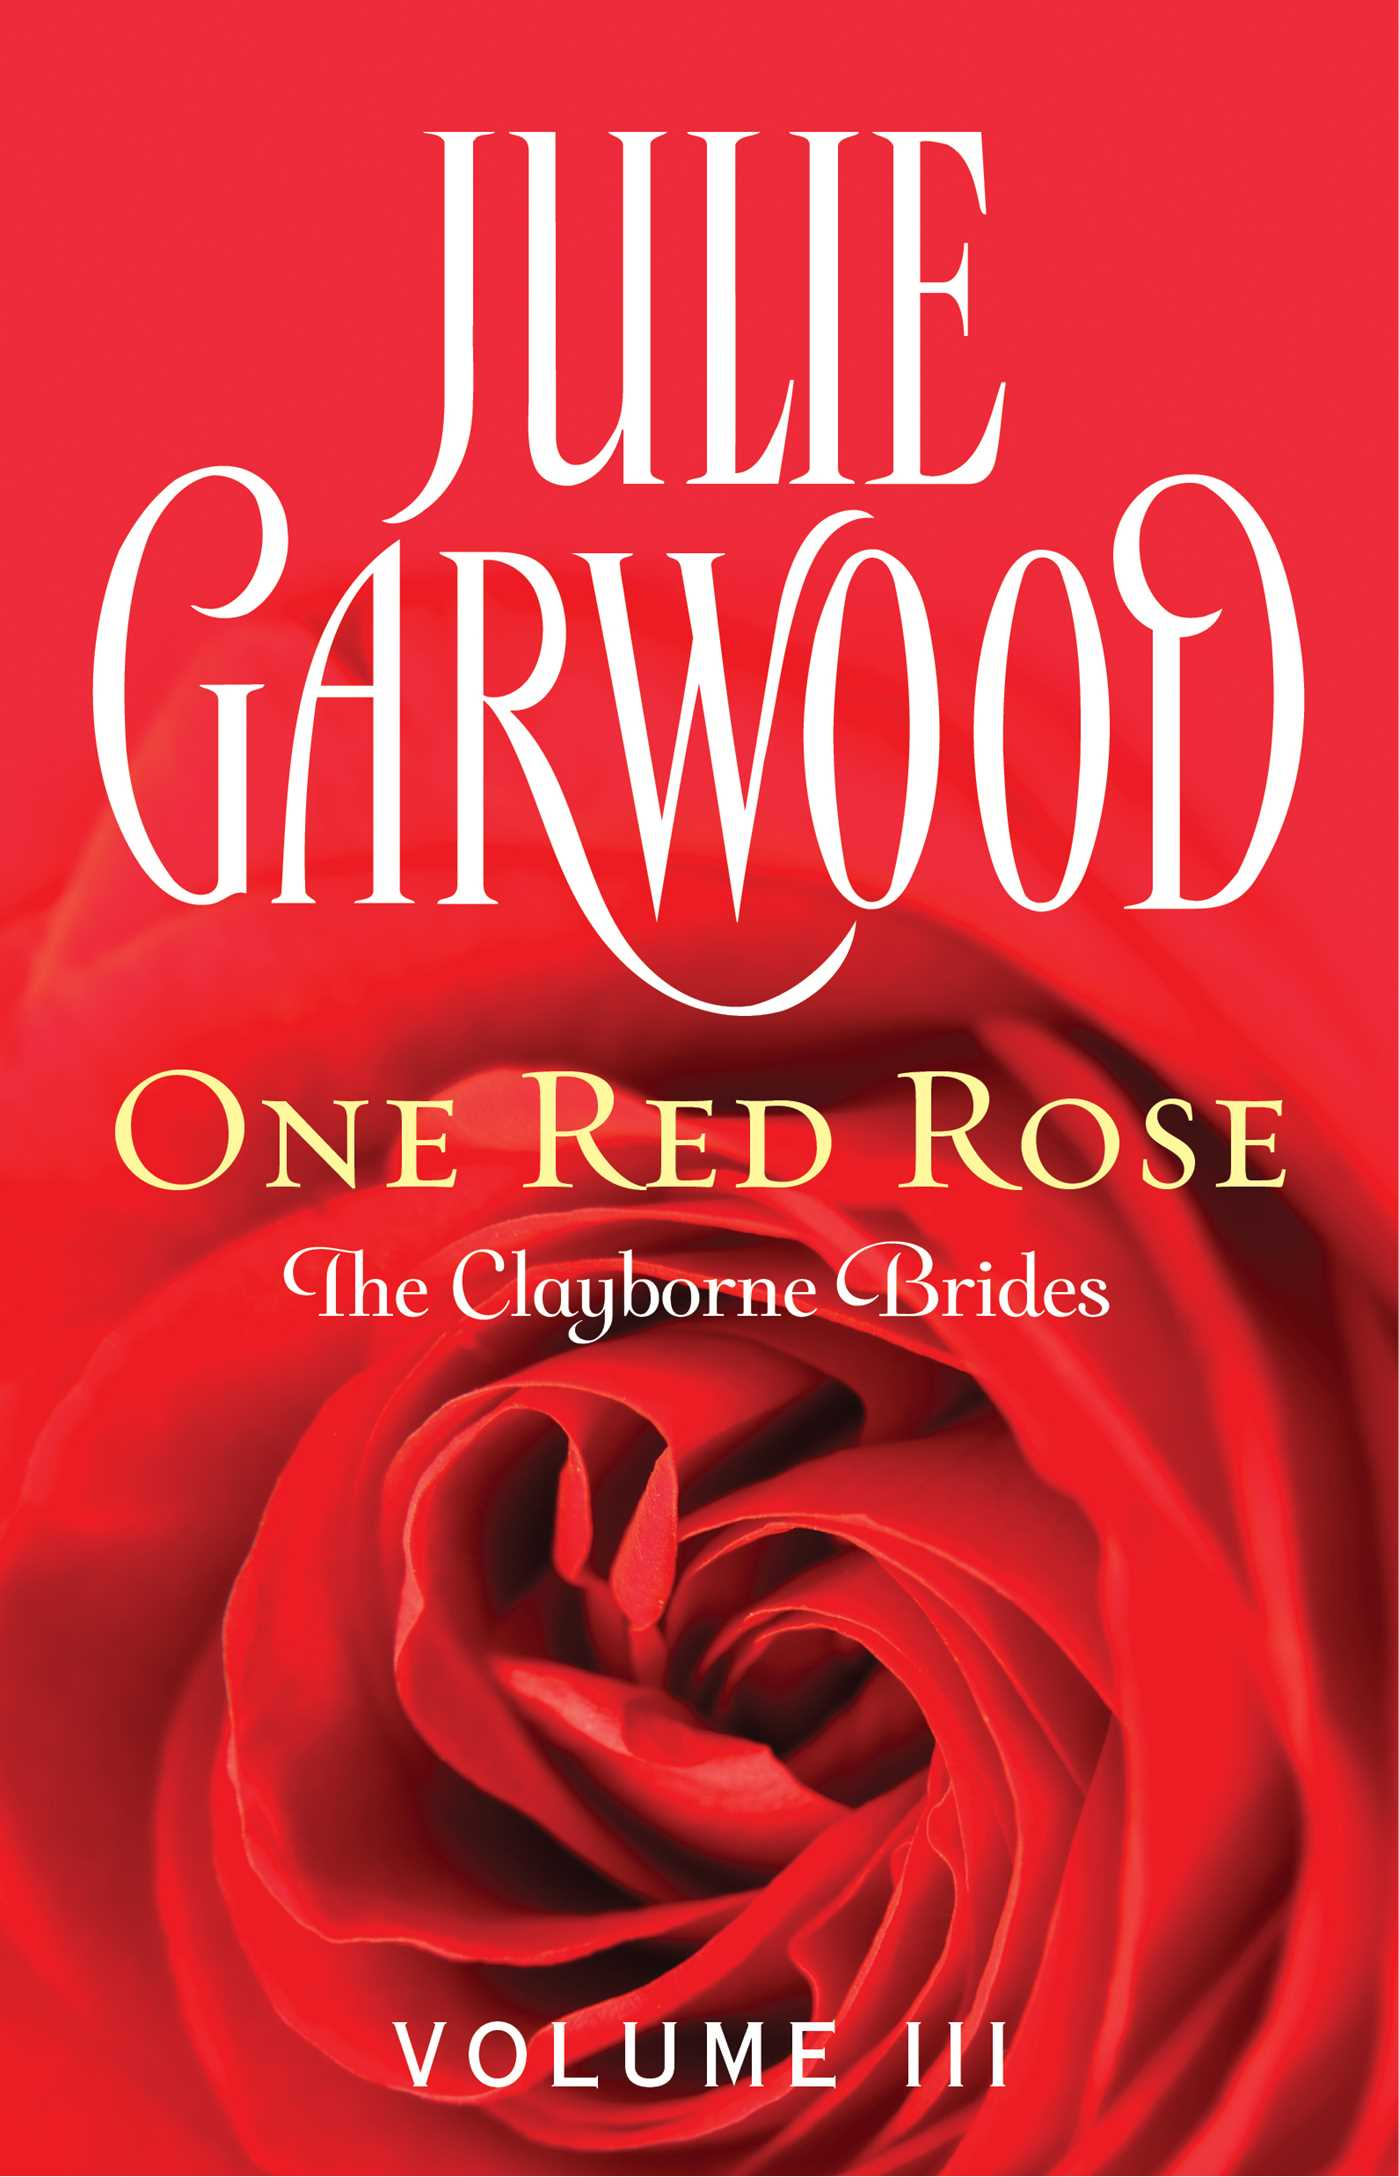 One Red Rose book cover